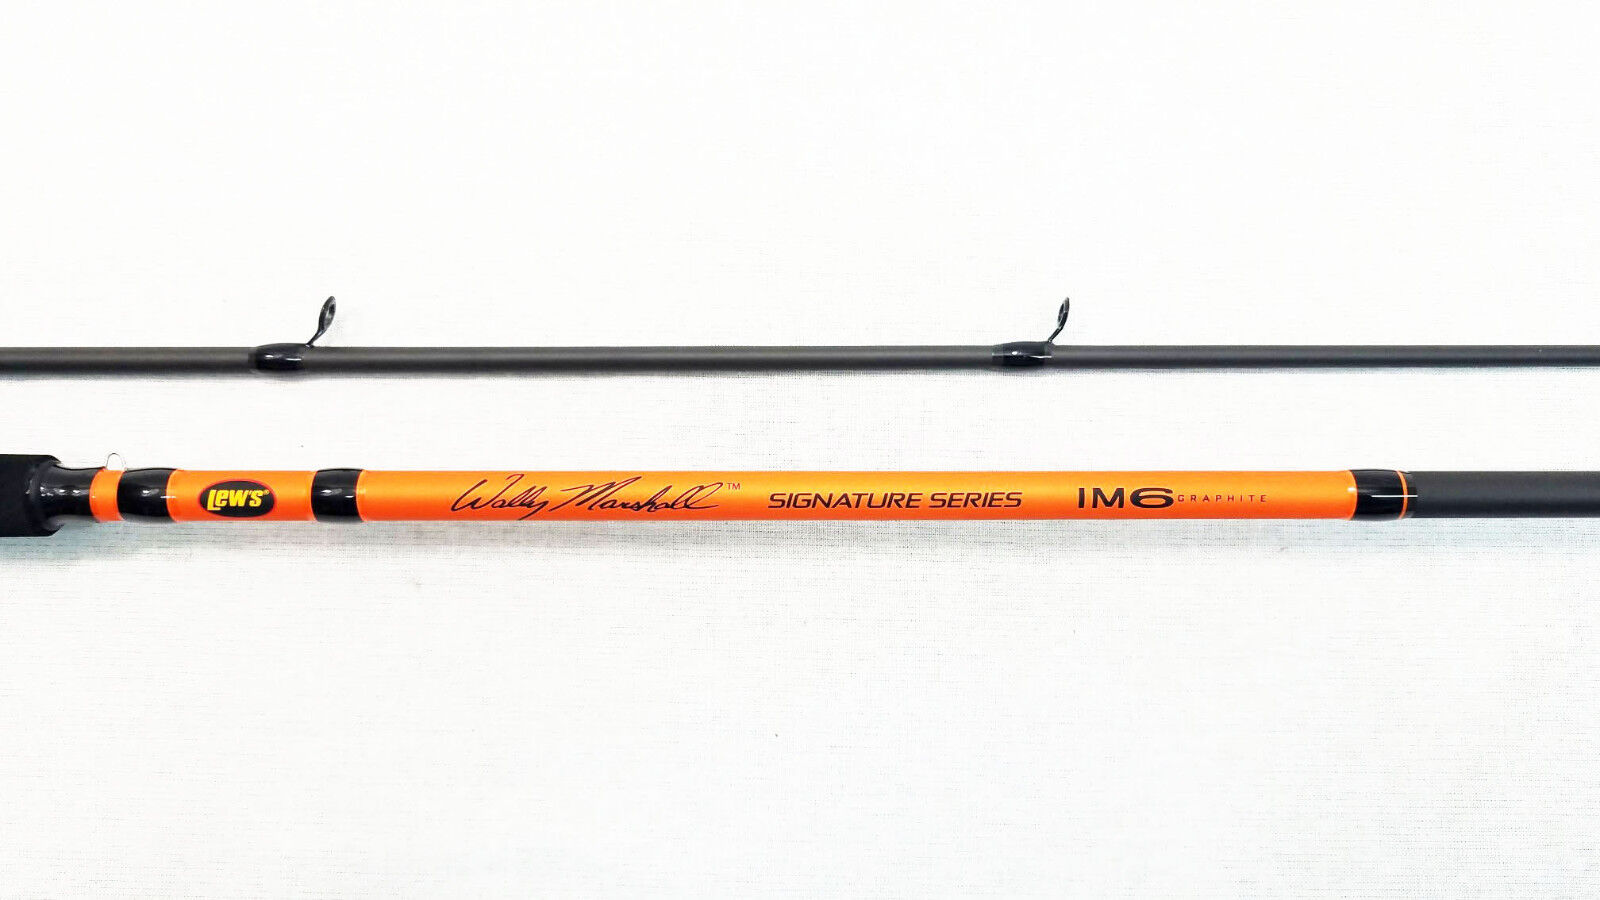 NEW LEW'S WALLY MARSHALL SIGNATURE SERIES 12' CRAPPIE POLE ROD, WMSO122, 2 PIECE